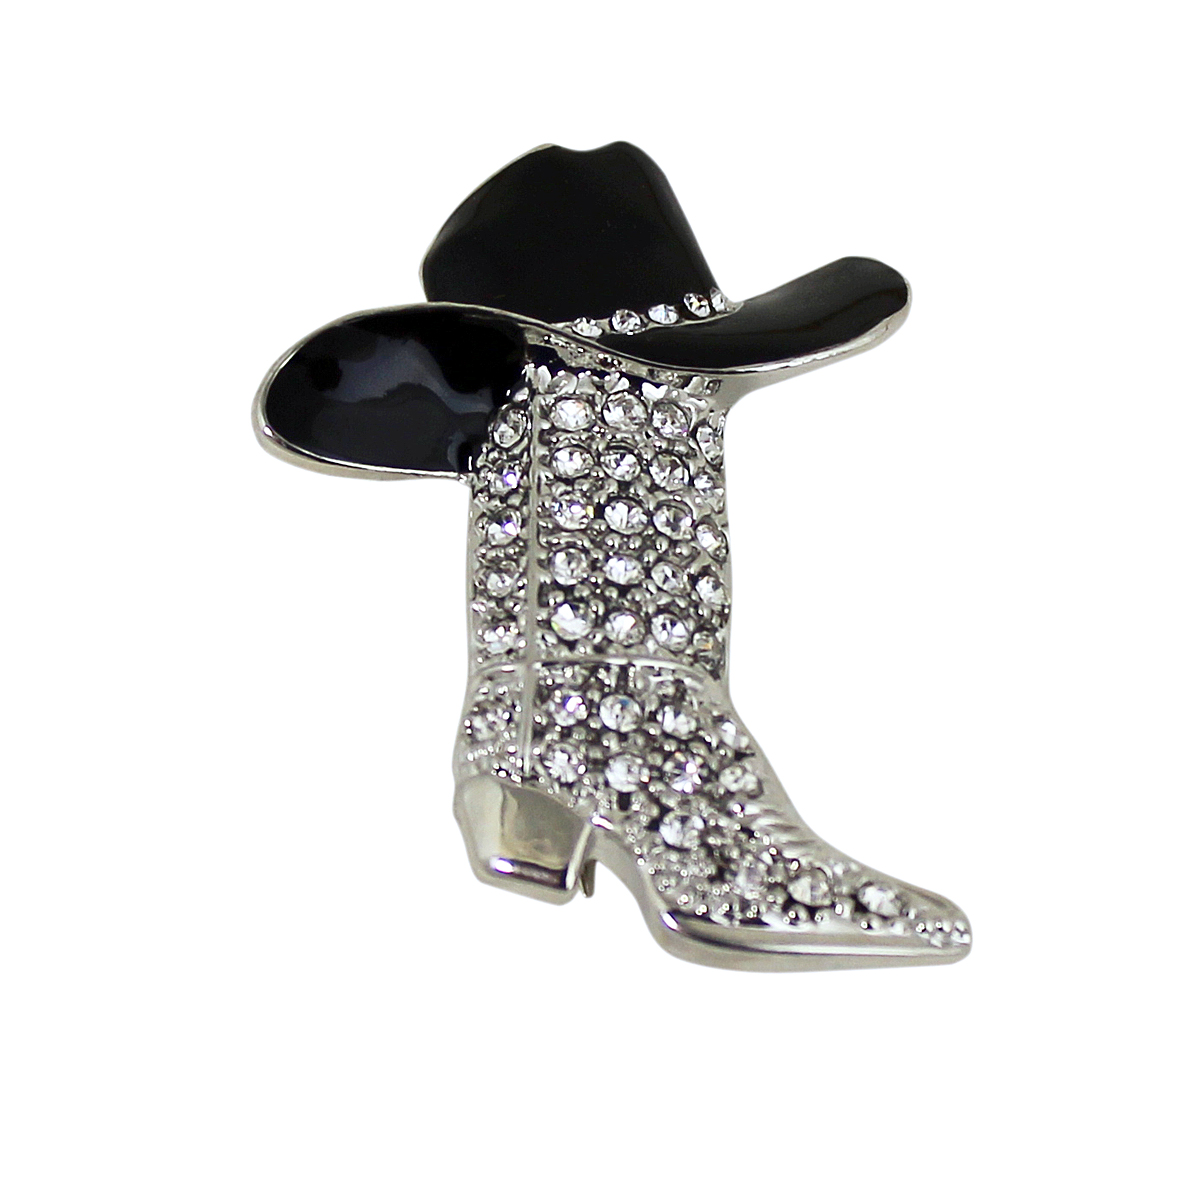 Cowboy Hats With Pins On Them: Crystal Encrusted Cowboy Boot And Hat Brooch Pin Or